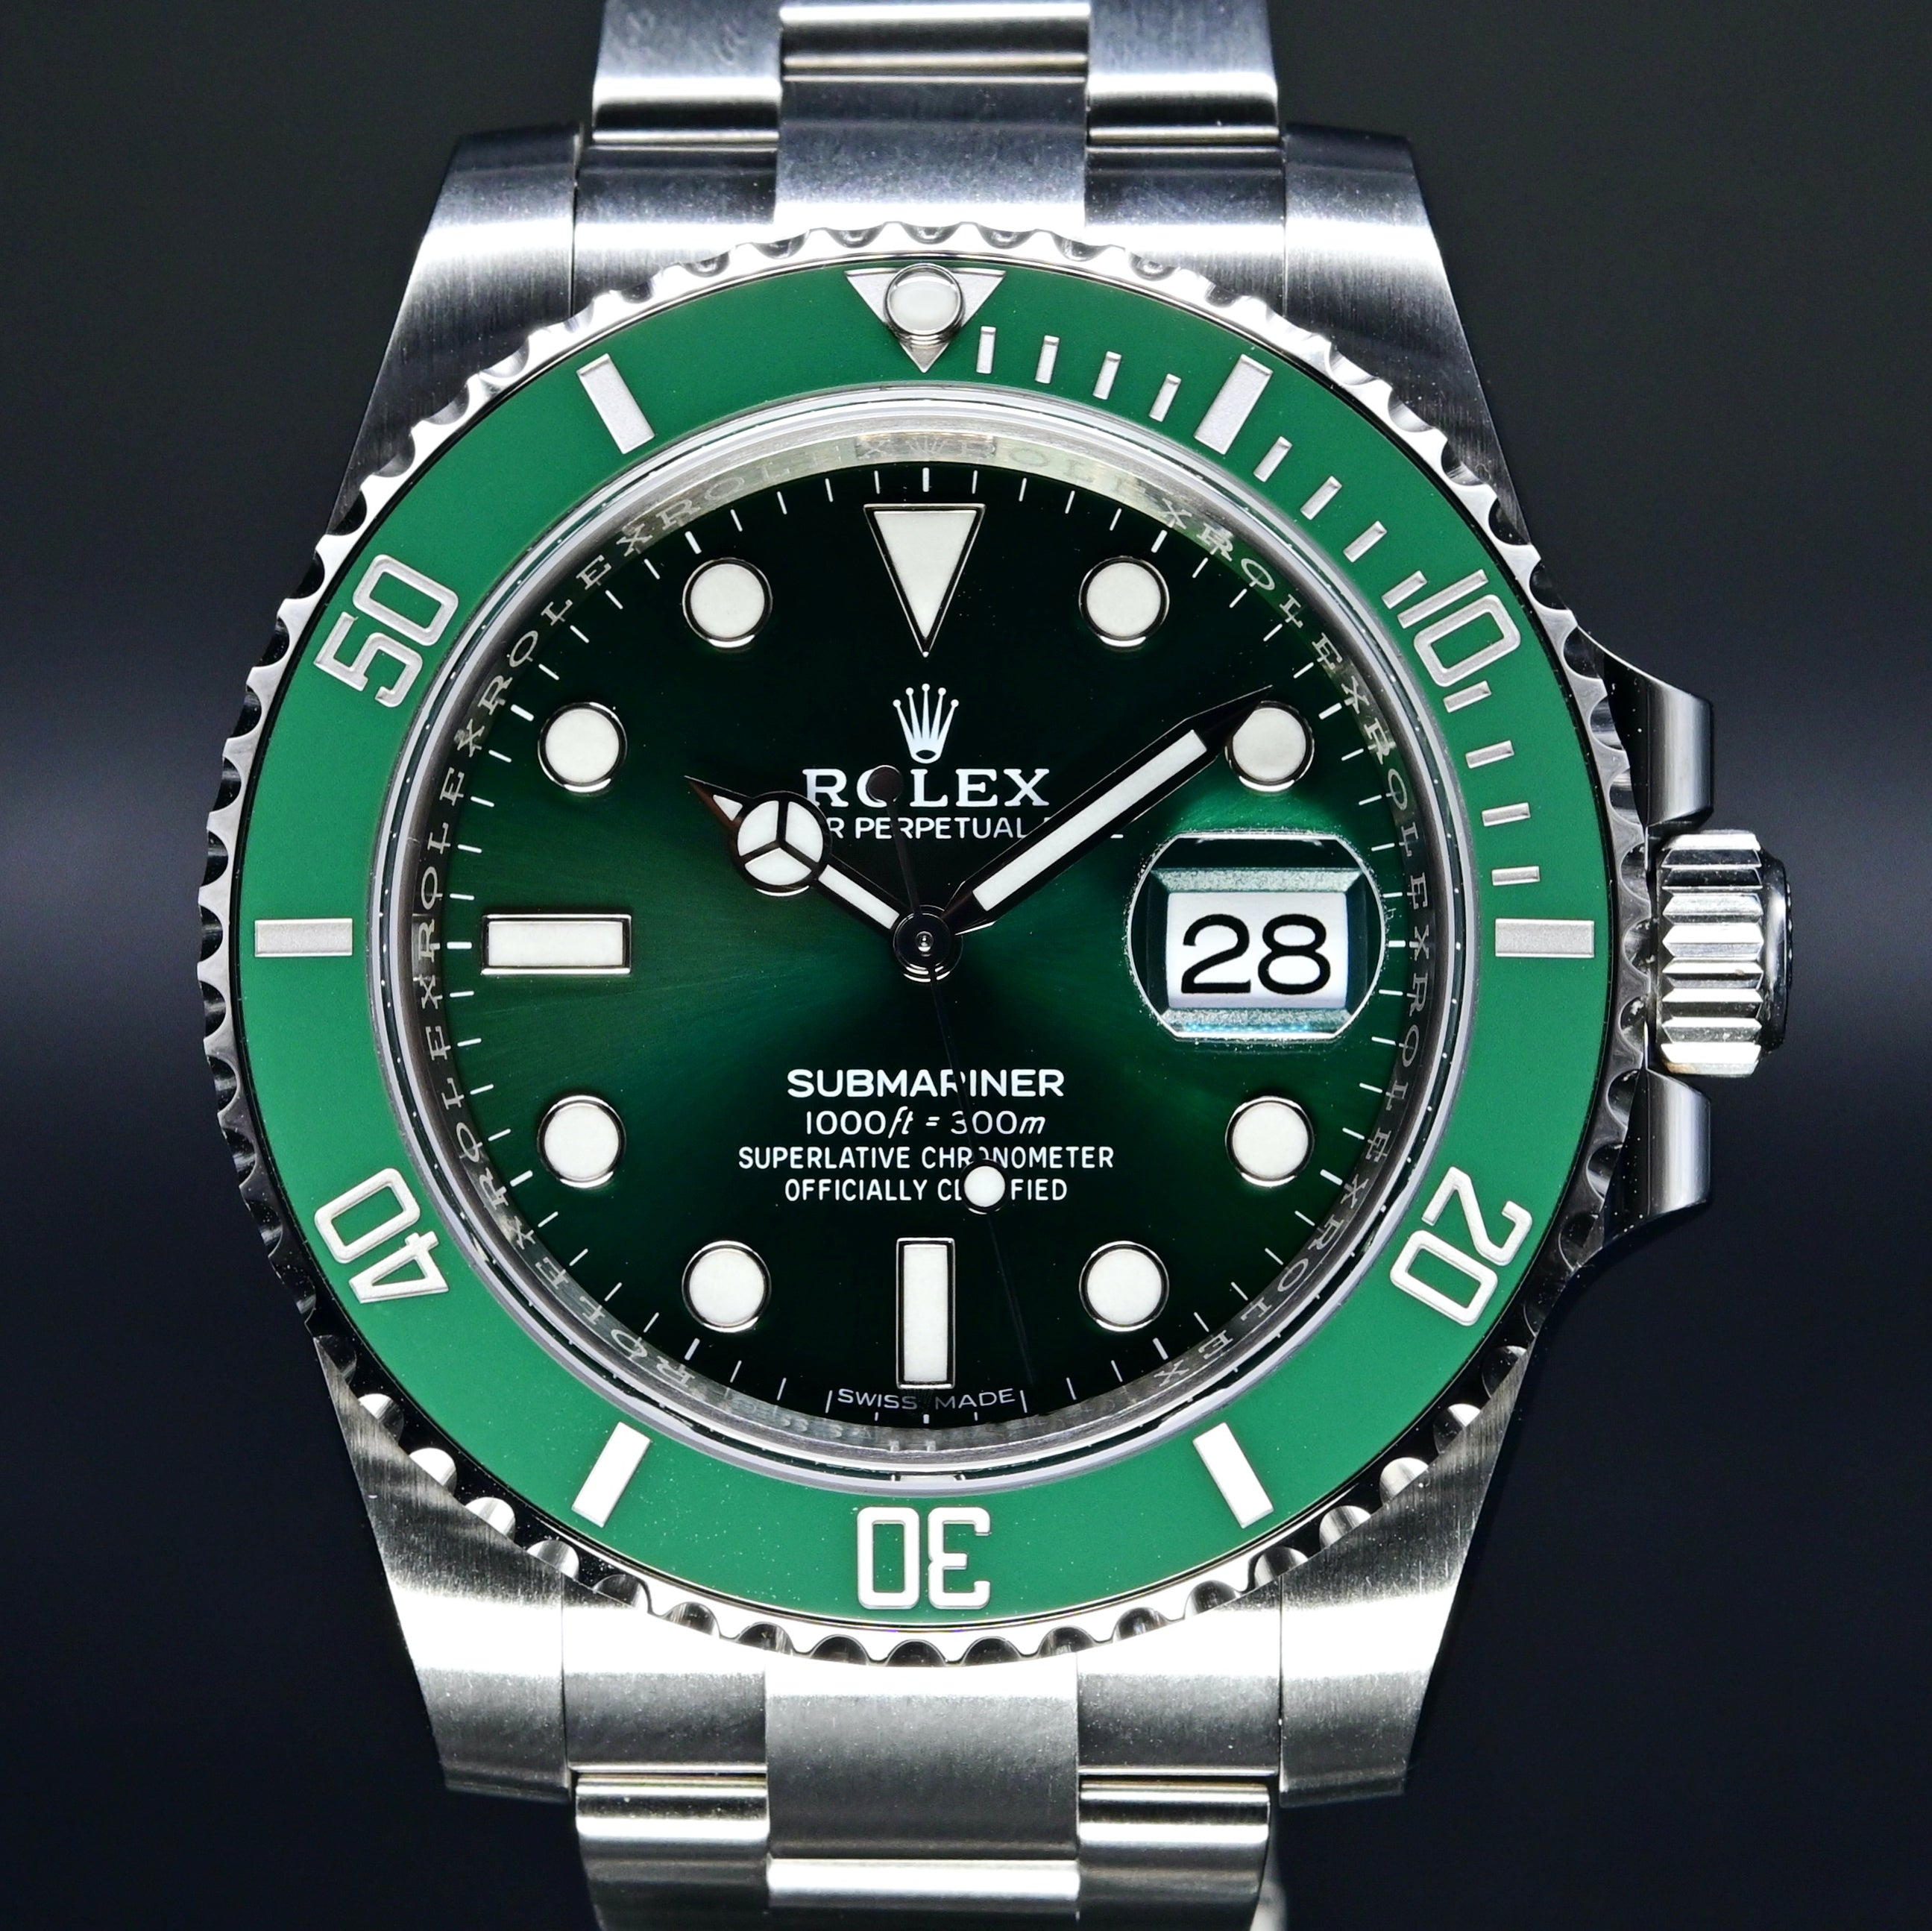 [Brand New Watch] Rolex Submariner Date 40mm 116610LV (Out of Production)